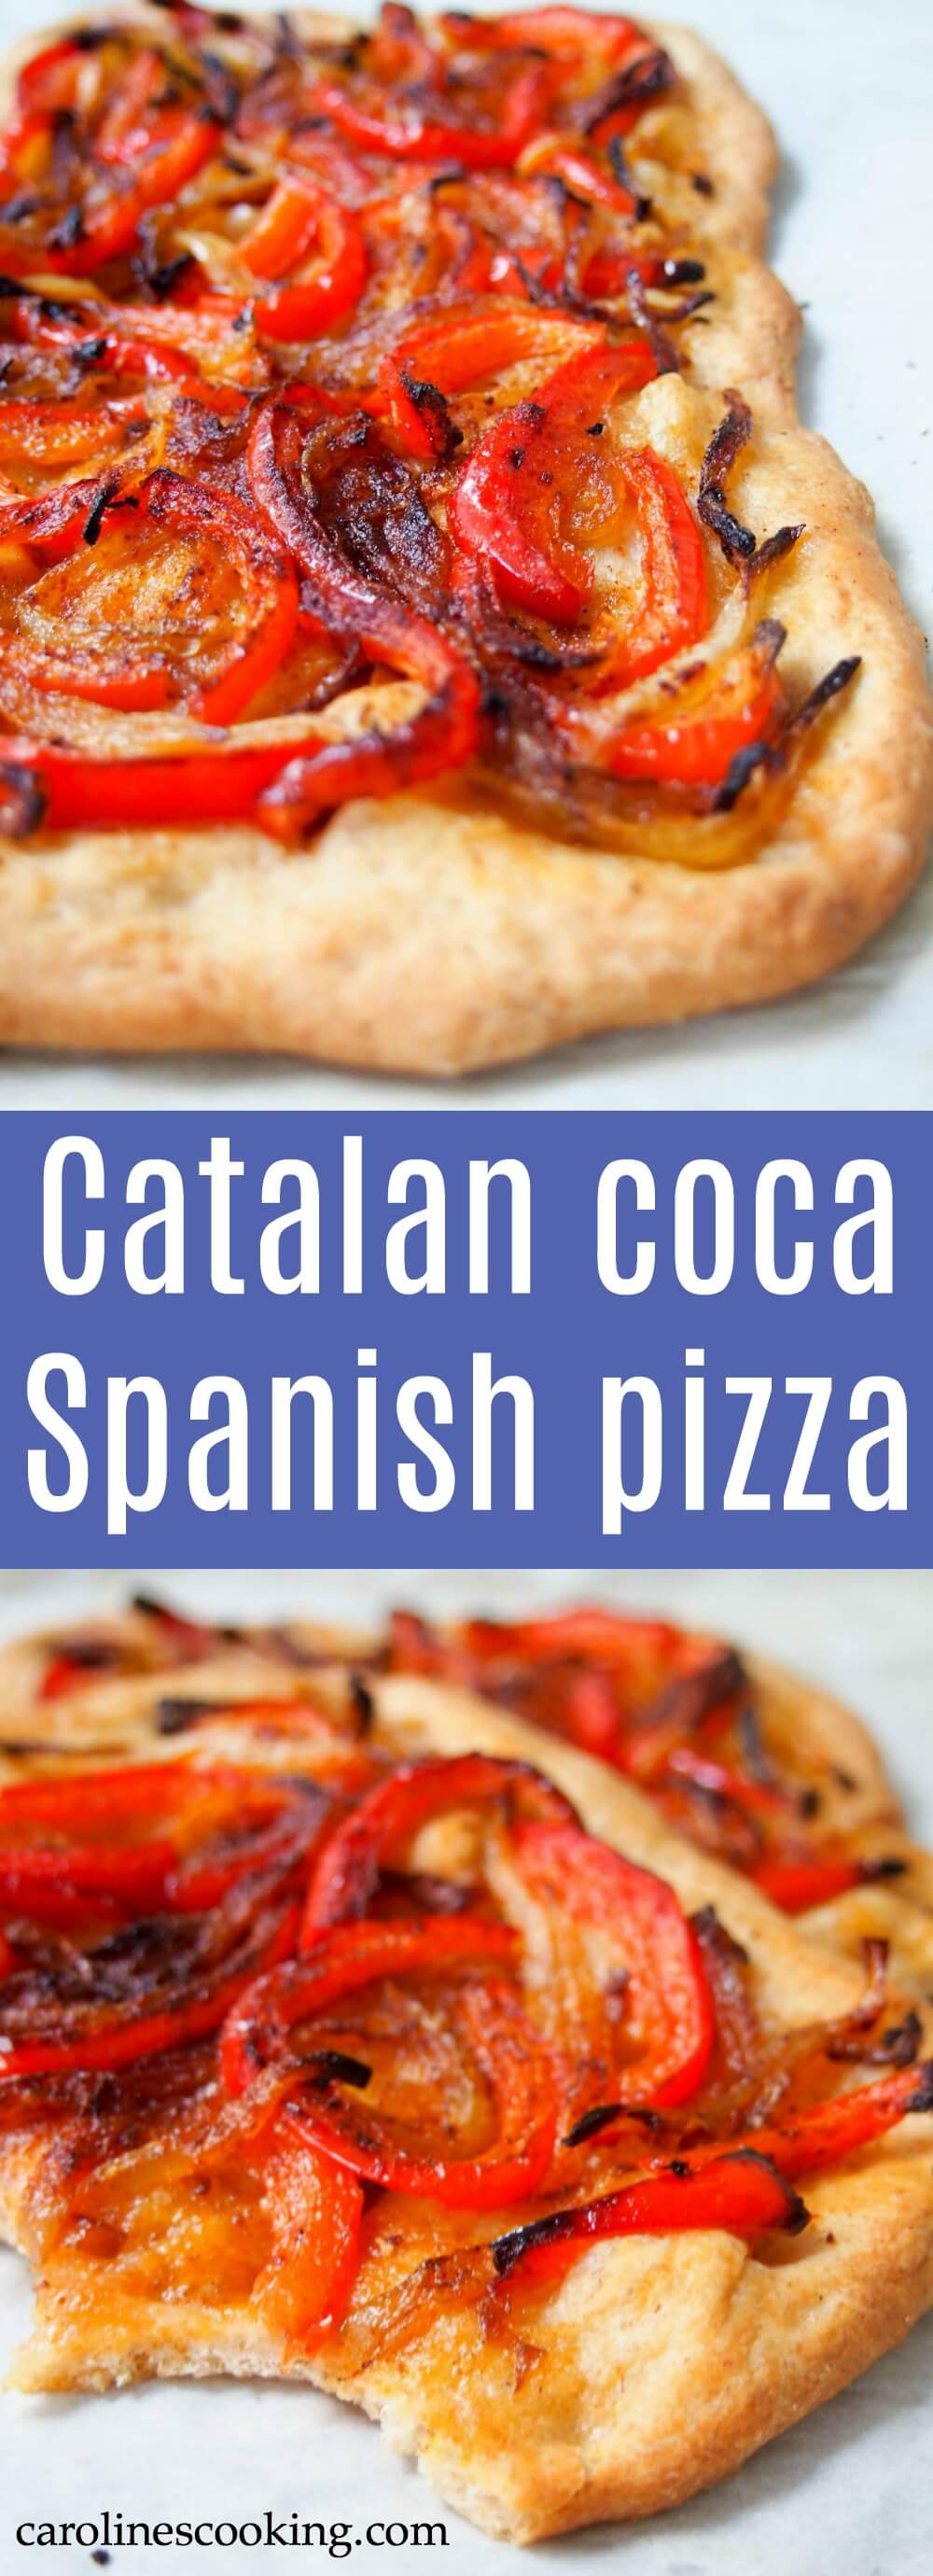 Catalan coca is a kind of a Spanish pizza or flatbread, but with some key differences - while toppings vary, most have no sauce and no cheese. But don't let that put you off, this is one delicious slice, and this simple pepper and onion version is a favorite. #Spanishfood #vegan #pizza